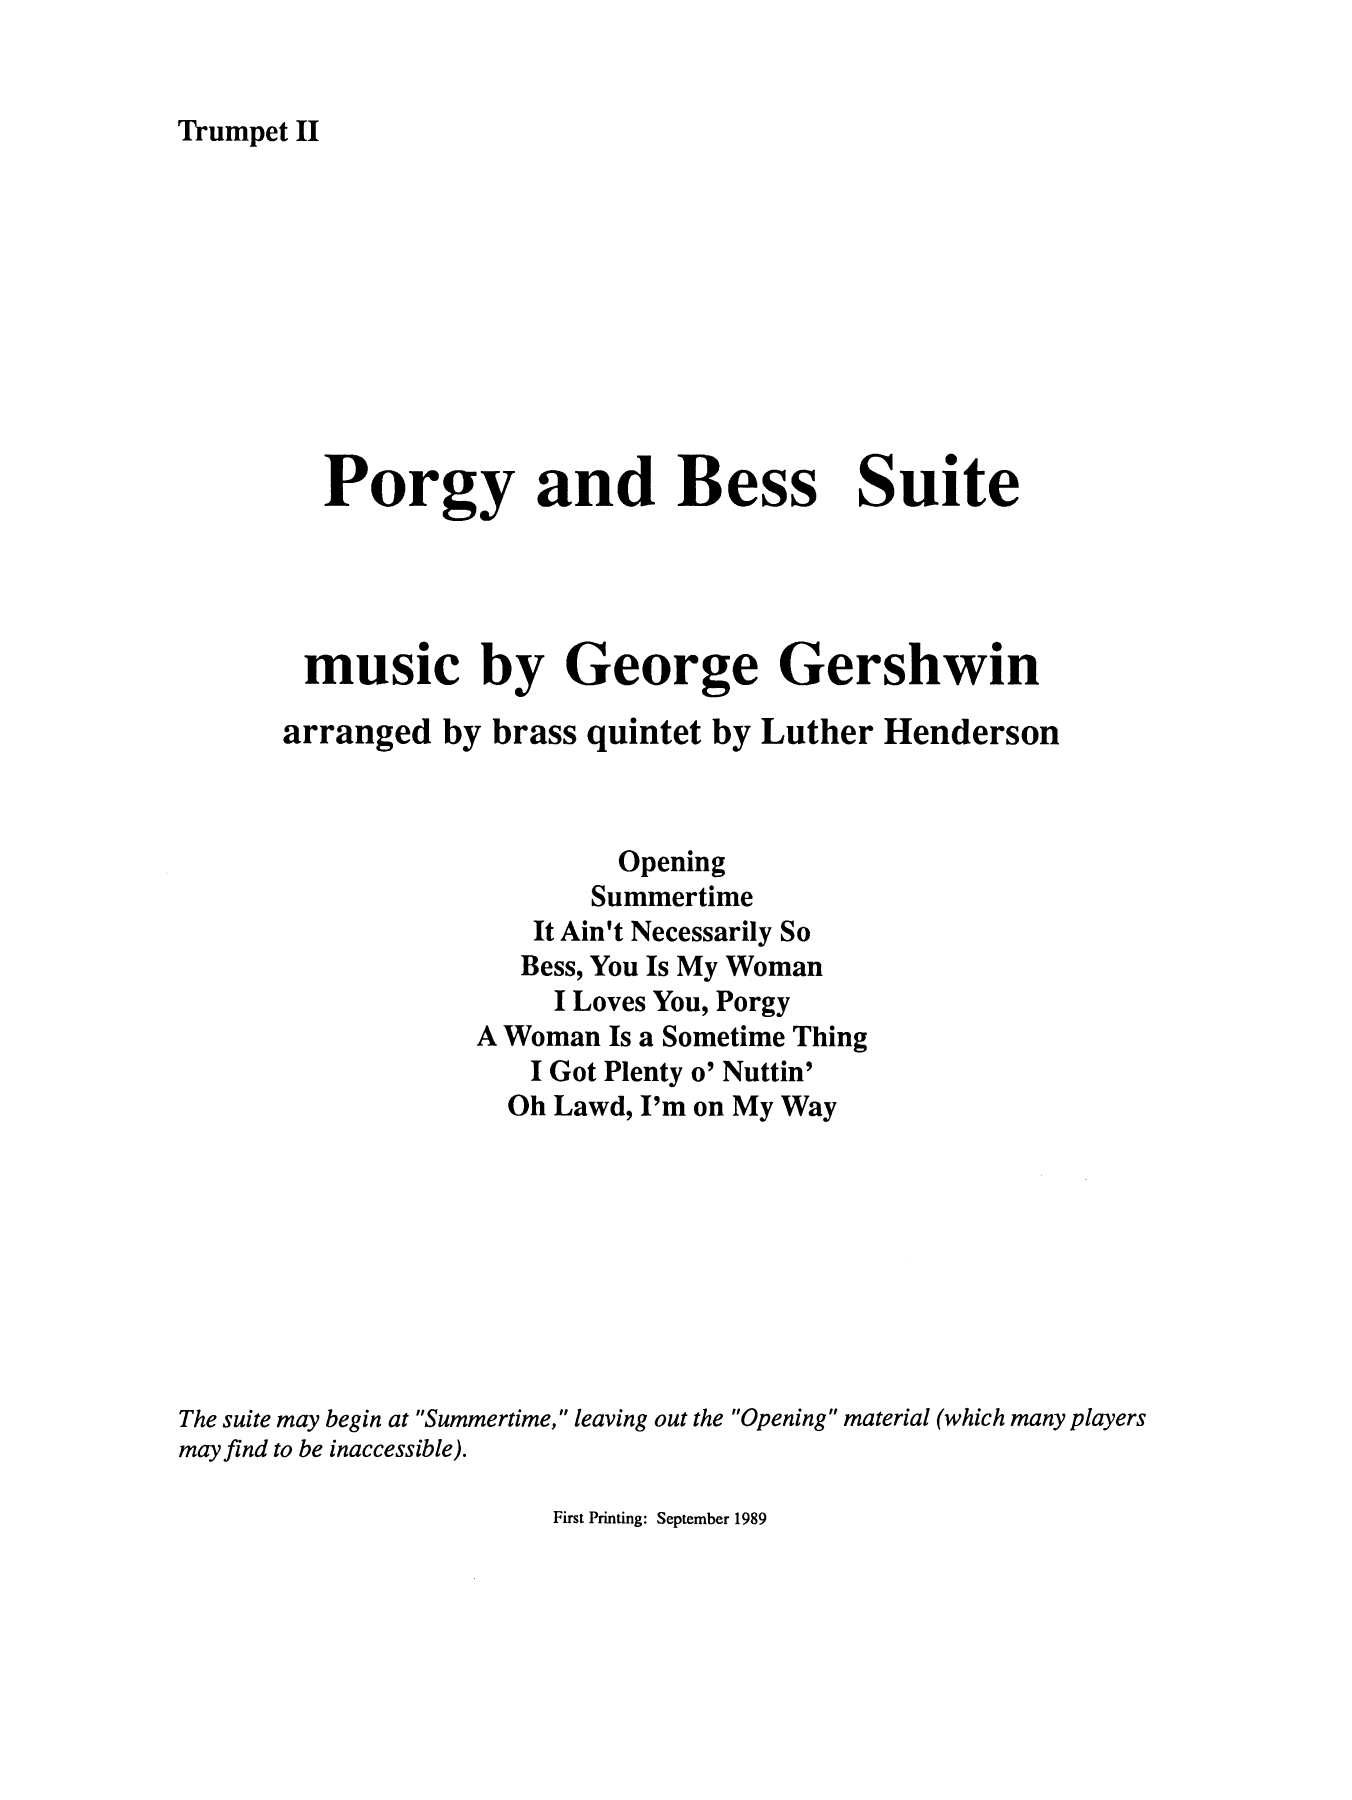 Porgy and Bess Suite - Bb Trumpet 2 (Brass Quintet) Sheet Music